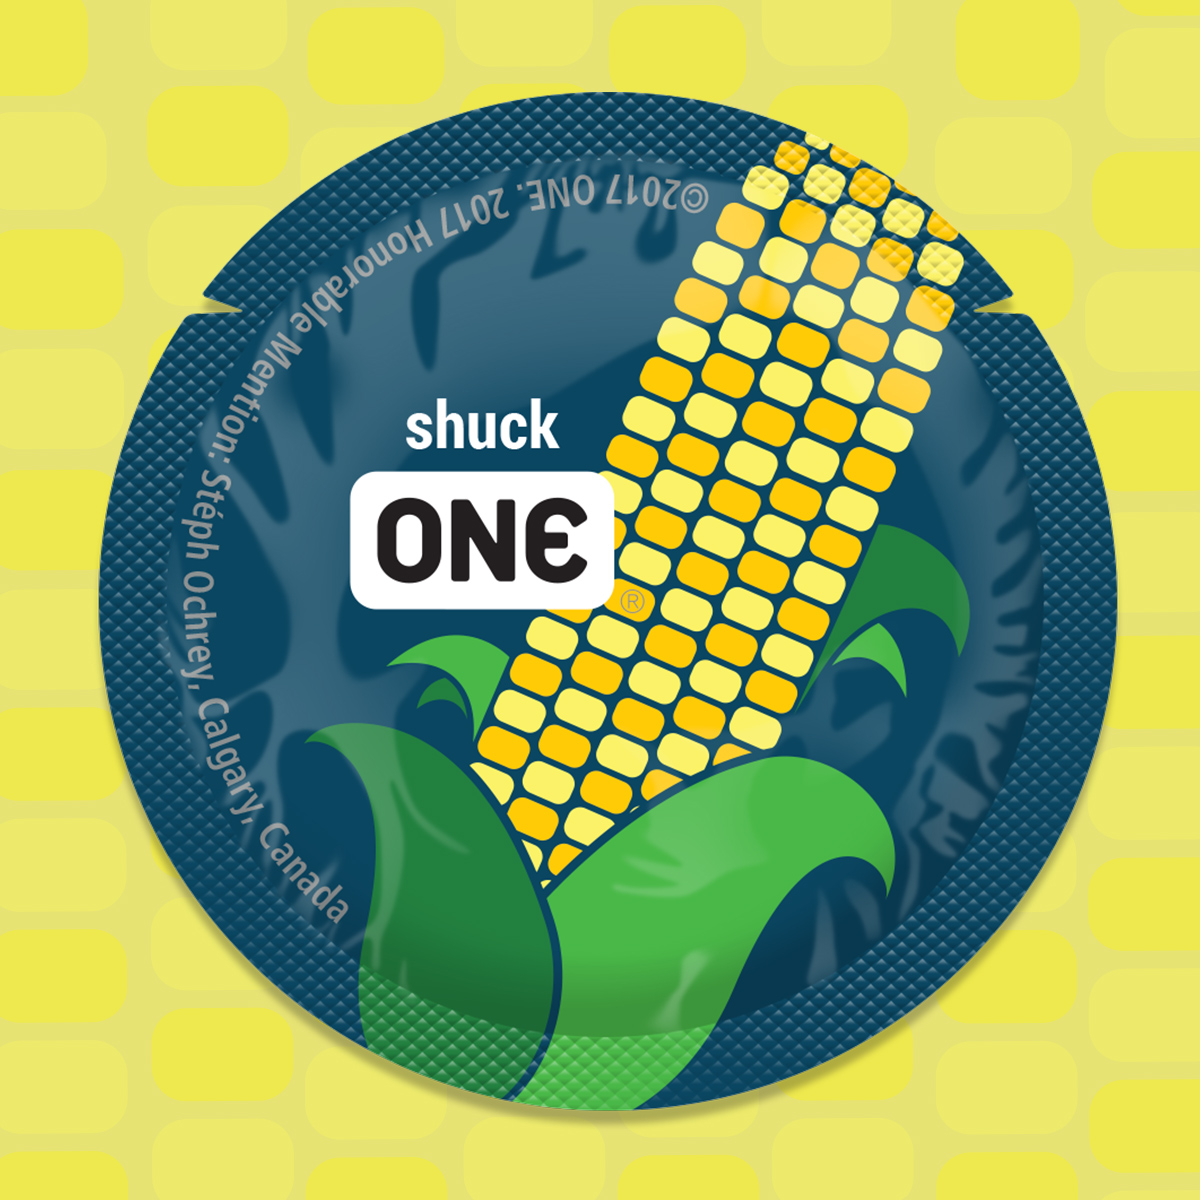 June 11th — Corn on the Cob Day